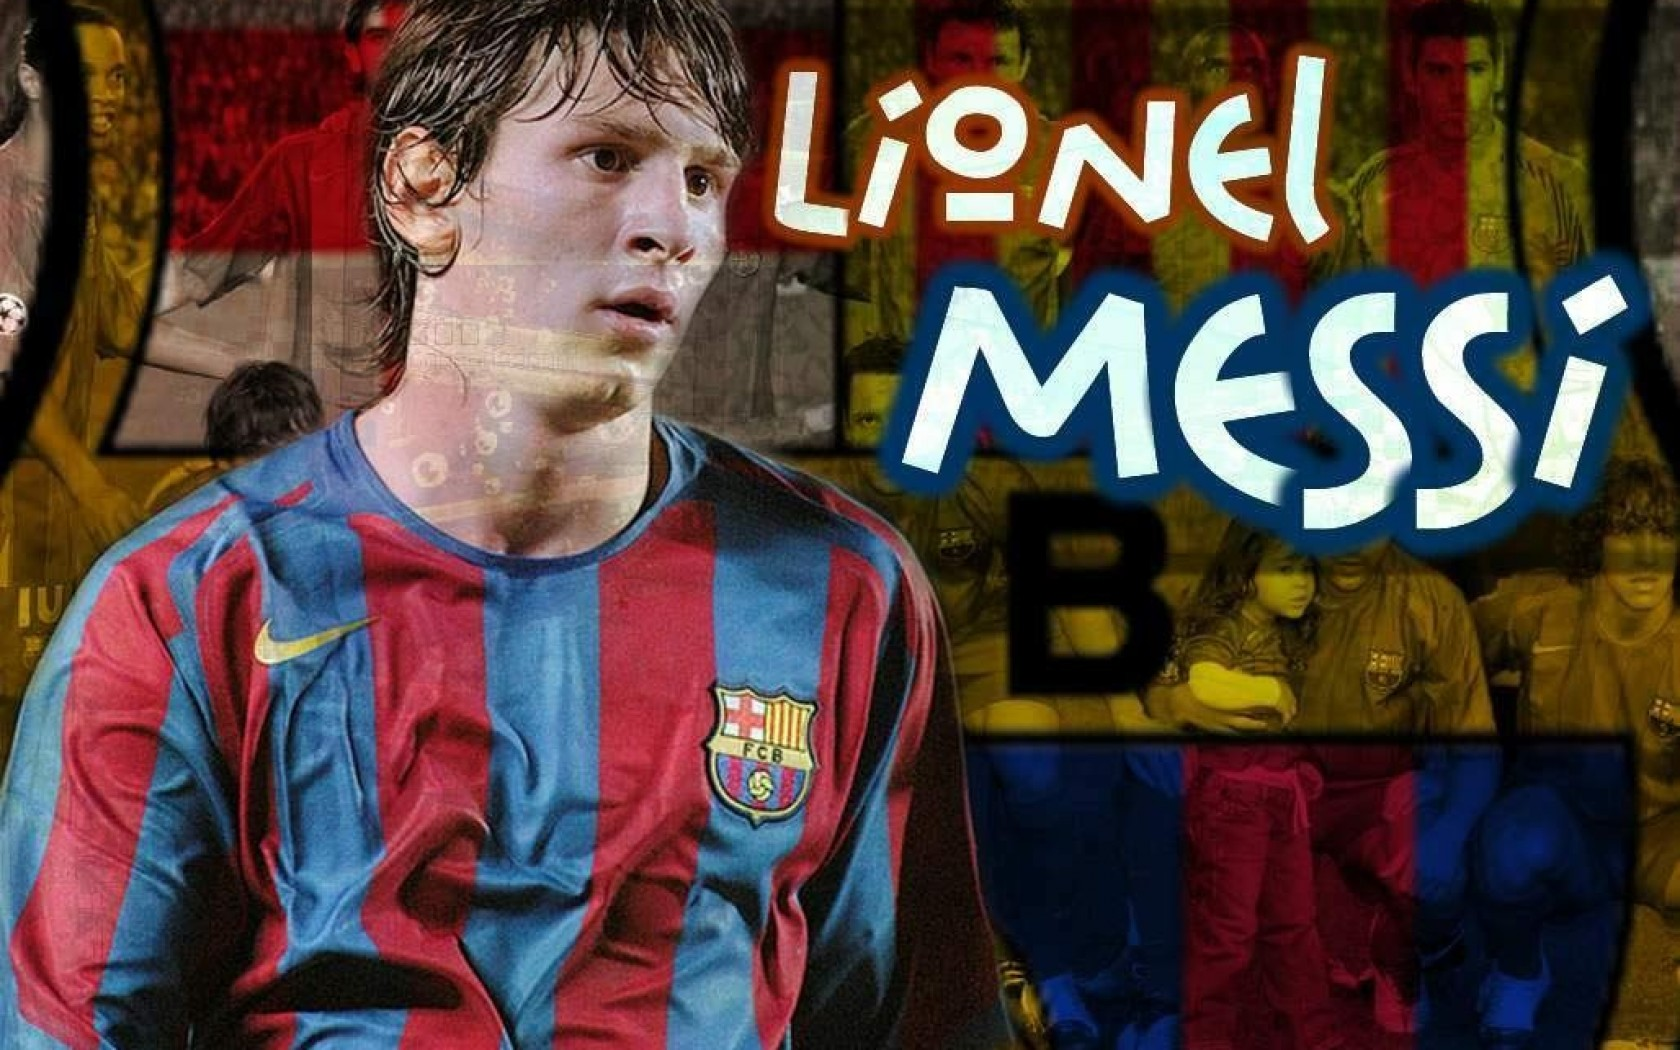 lionel-messi-wallpaper-barcelona-20140530033132-5387fb943ff3c